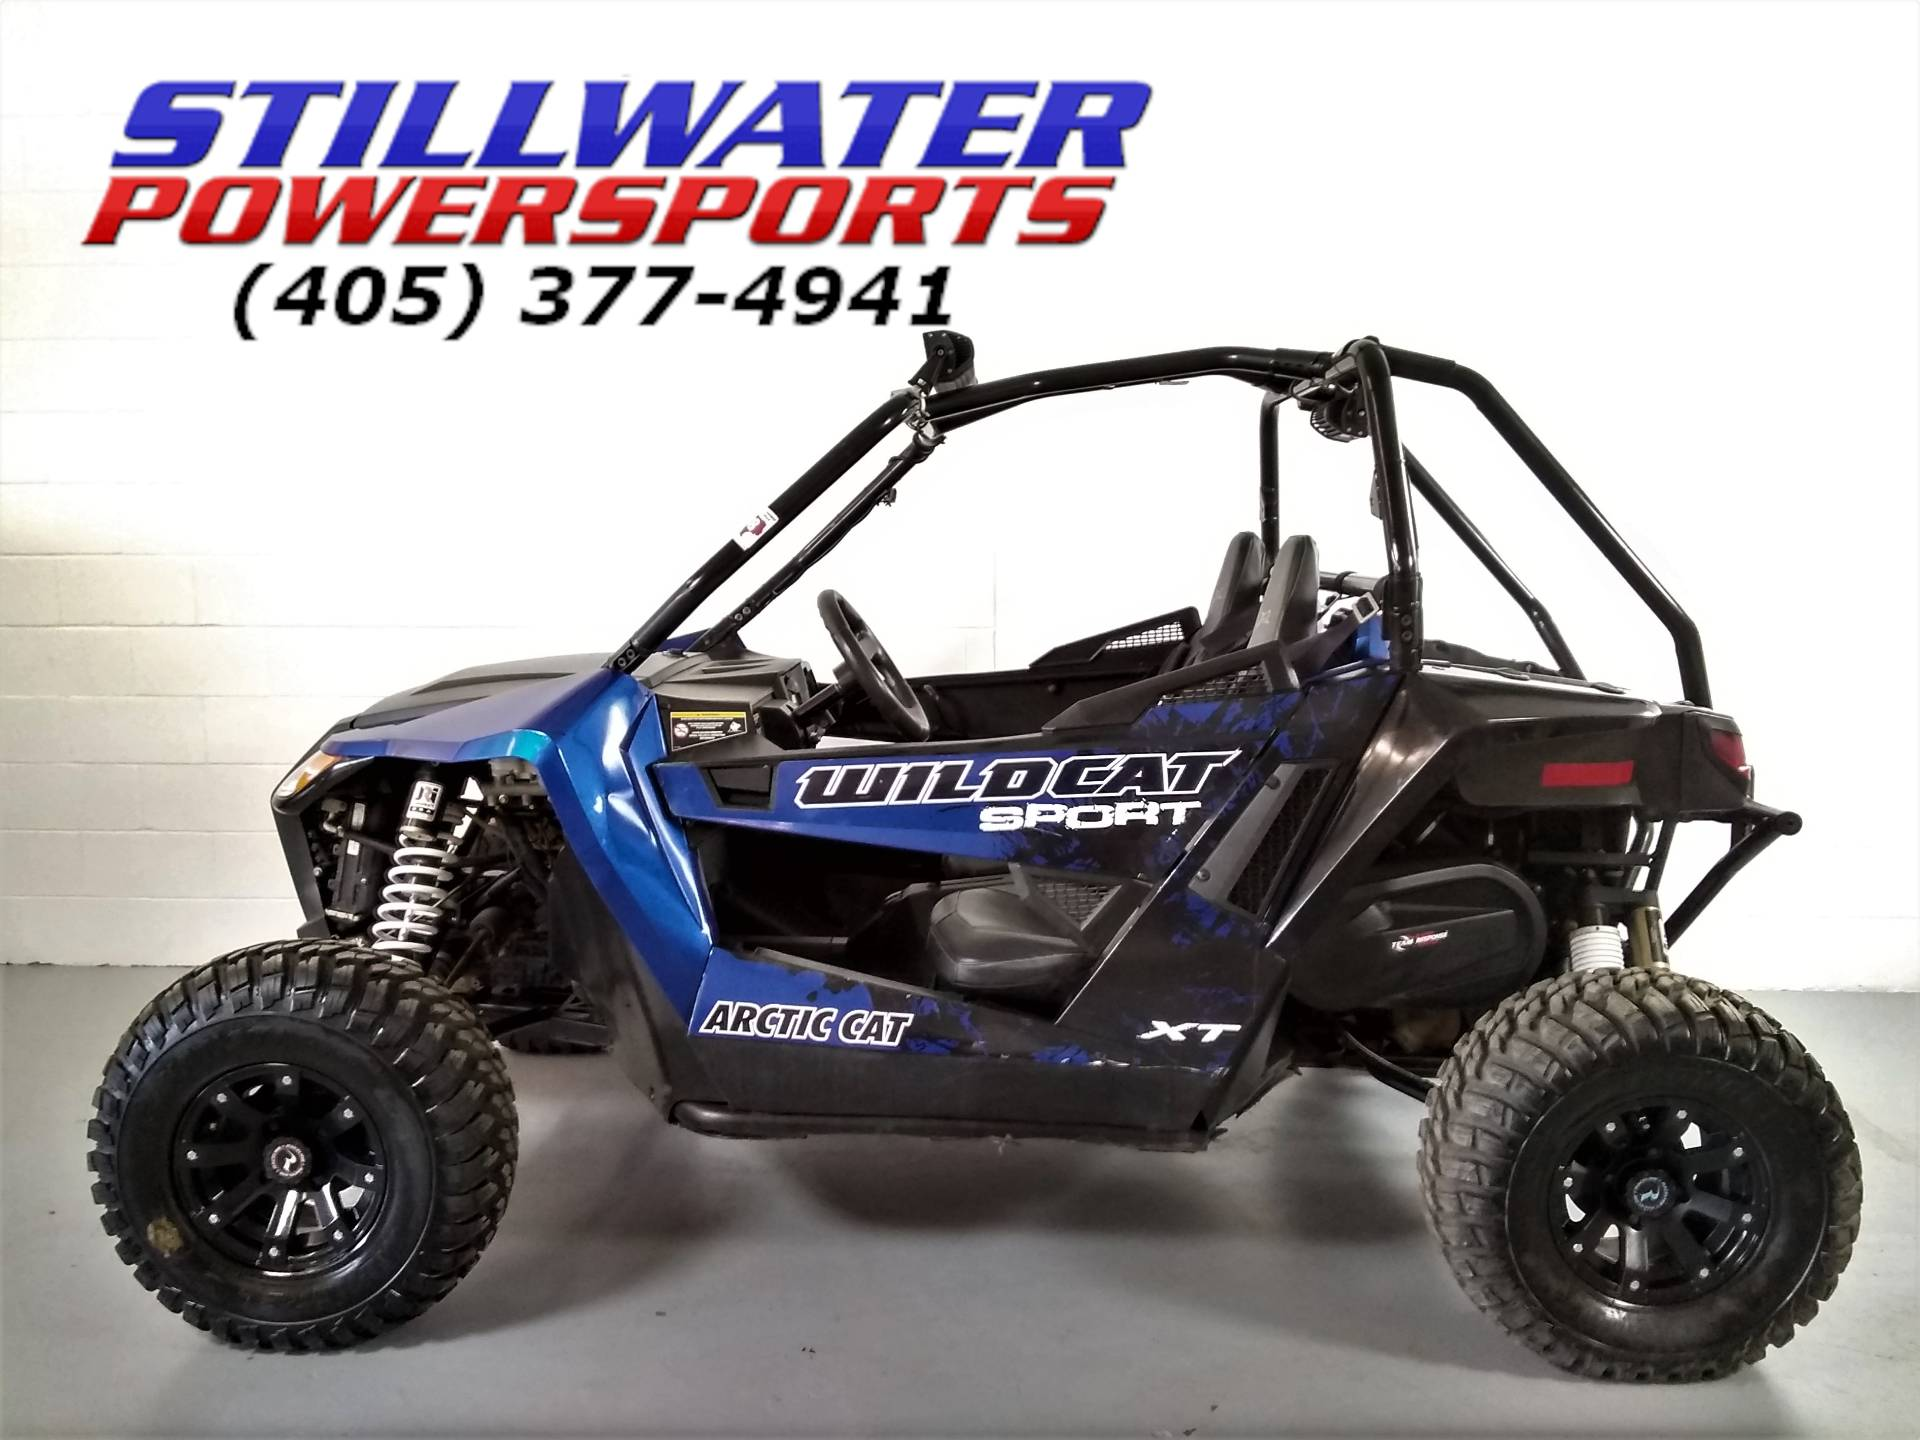 2015 Arctic Cat Wildcat™ Sport XT in Stillwater, Oklahoma - Photo 7